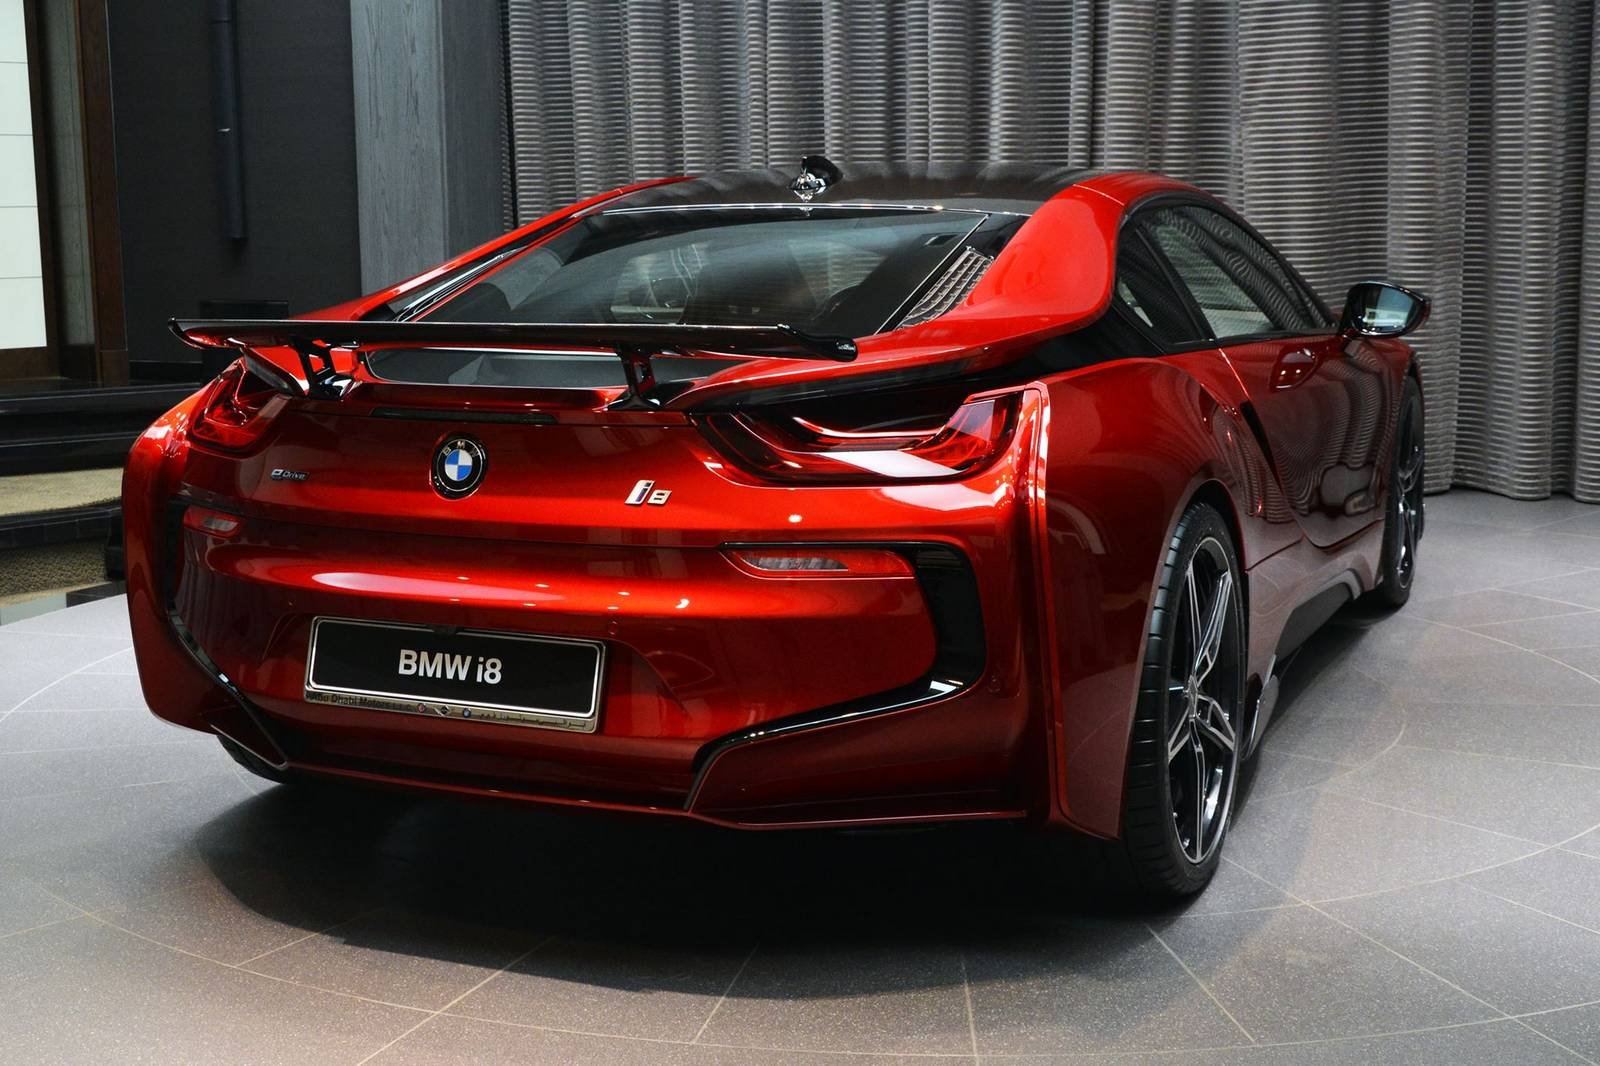 1 of 1 lava red bmw i8 built for princess al hawi in abu dhabi gtspirit. Black Bedroom Furniture Sets. Home Design Ideas